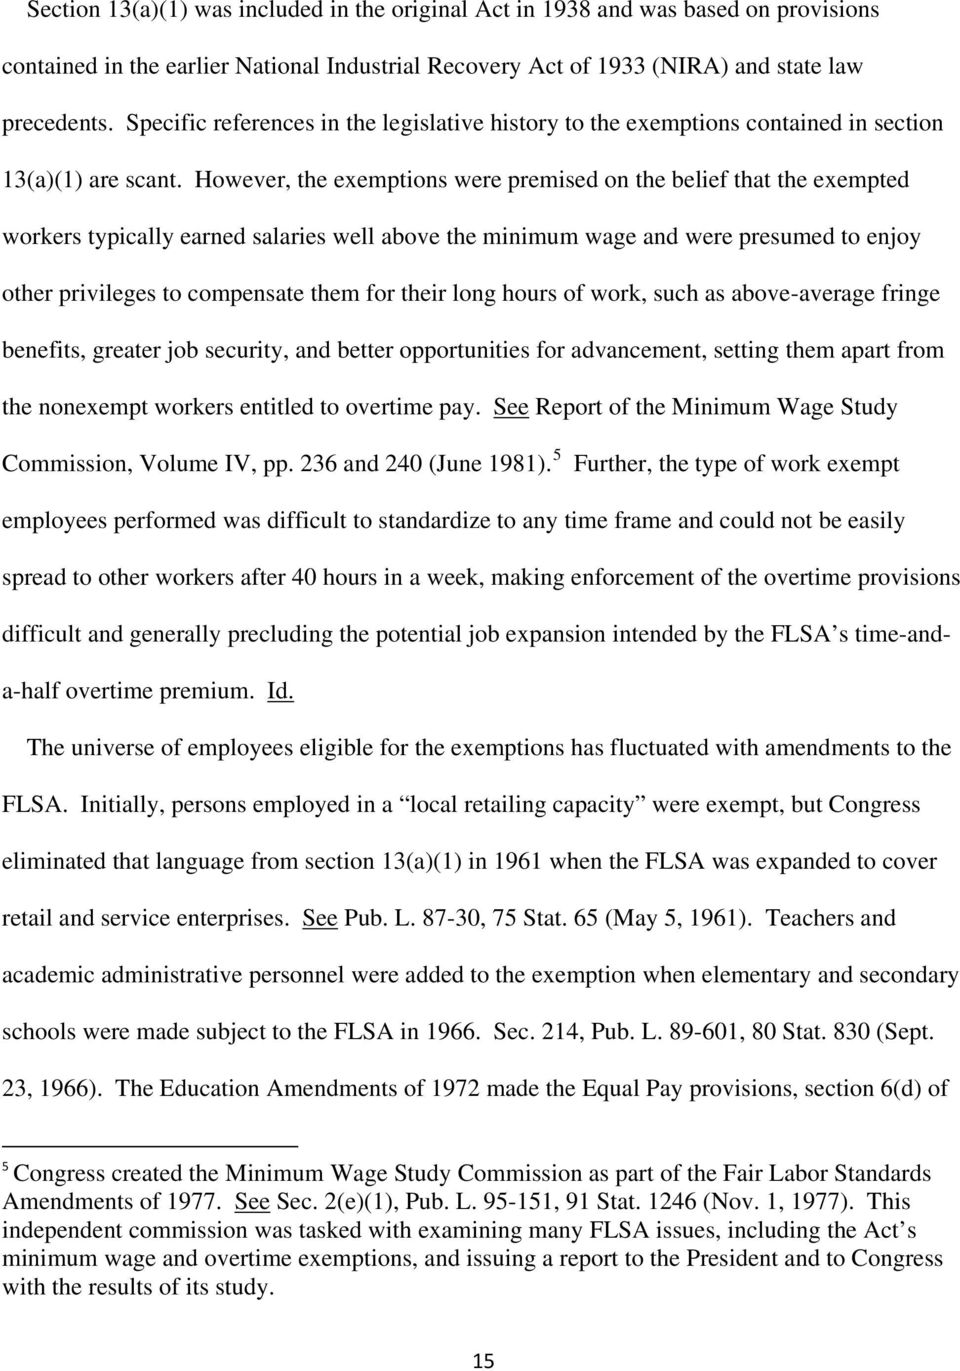 However, the exemptions were premised on the belief that the exempted workers typically earned salaries well above the minimum wage and were presumed to enjoy other privileges to compensate them for